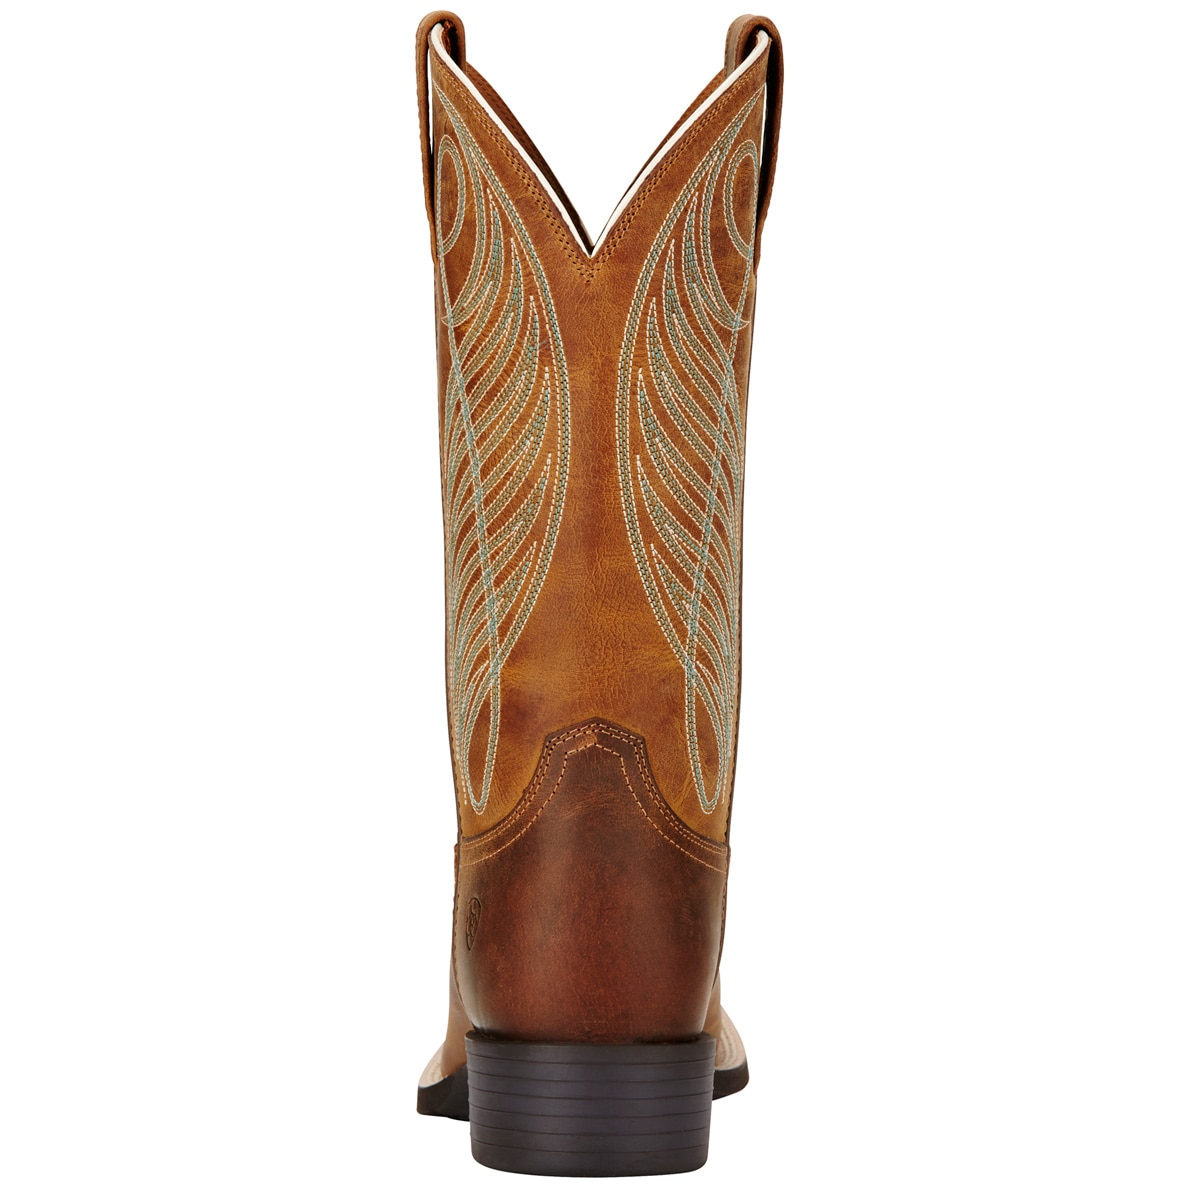 f4a8ace658 Ariat Women's Round Up Wide Square Toe Boots - Powder Brown